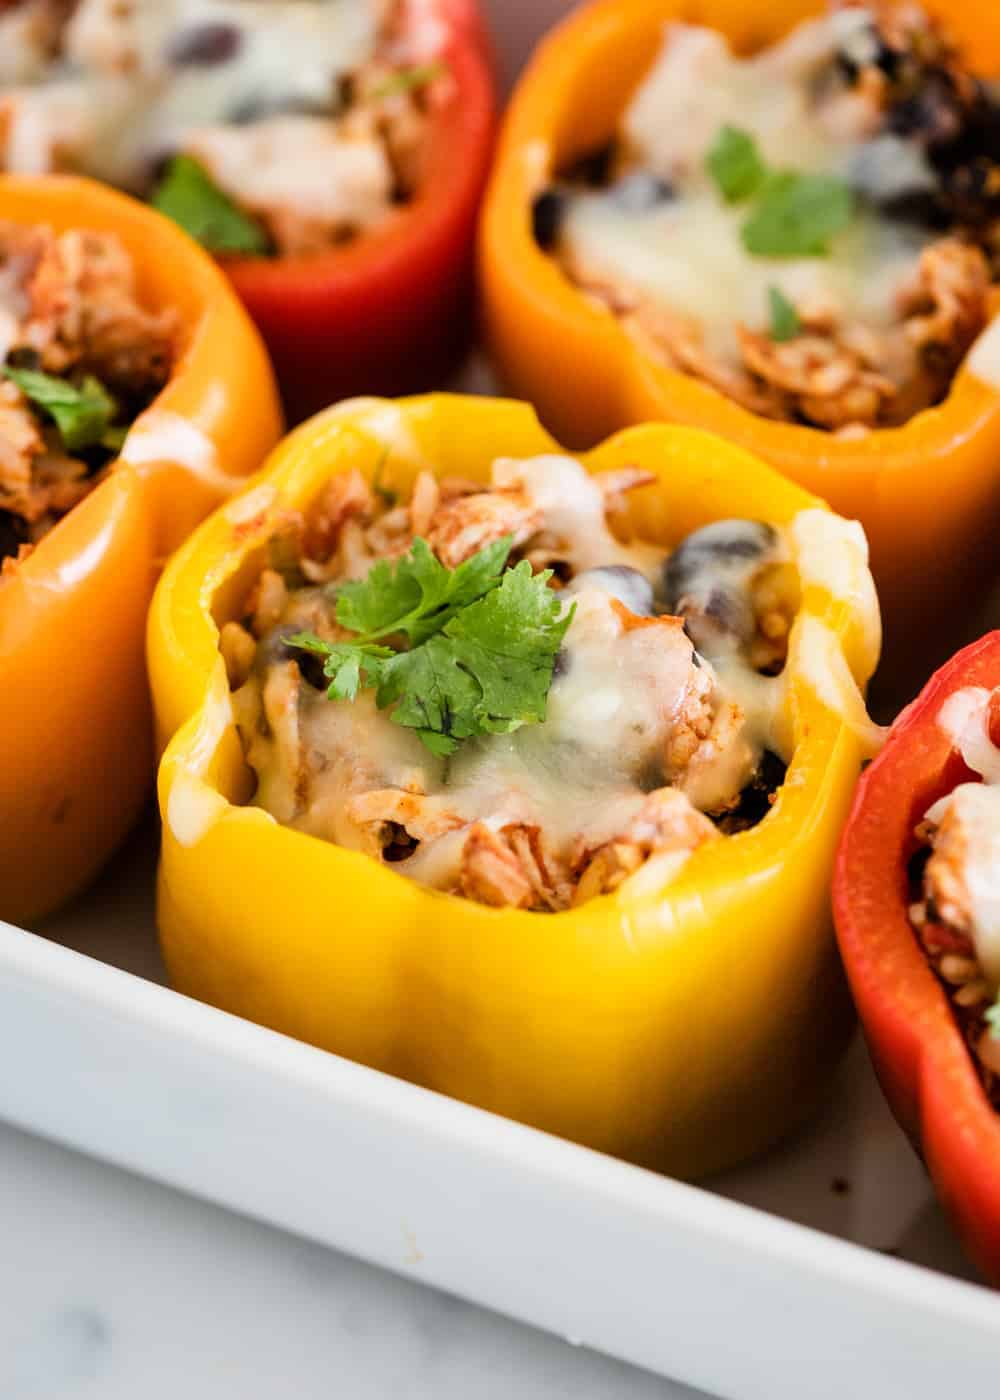 shredded chicken stuffed bell pepper topped with cheese and cilantro